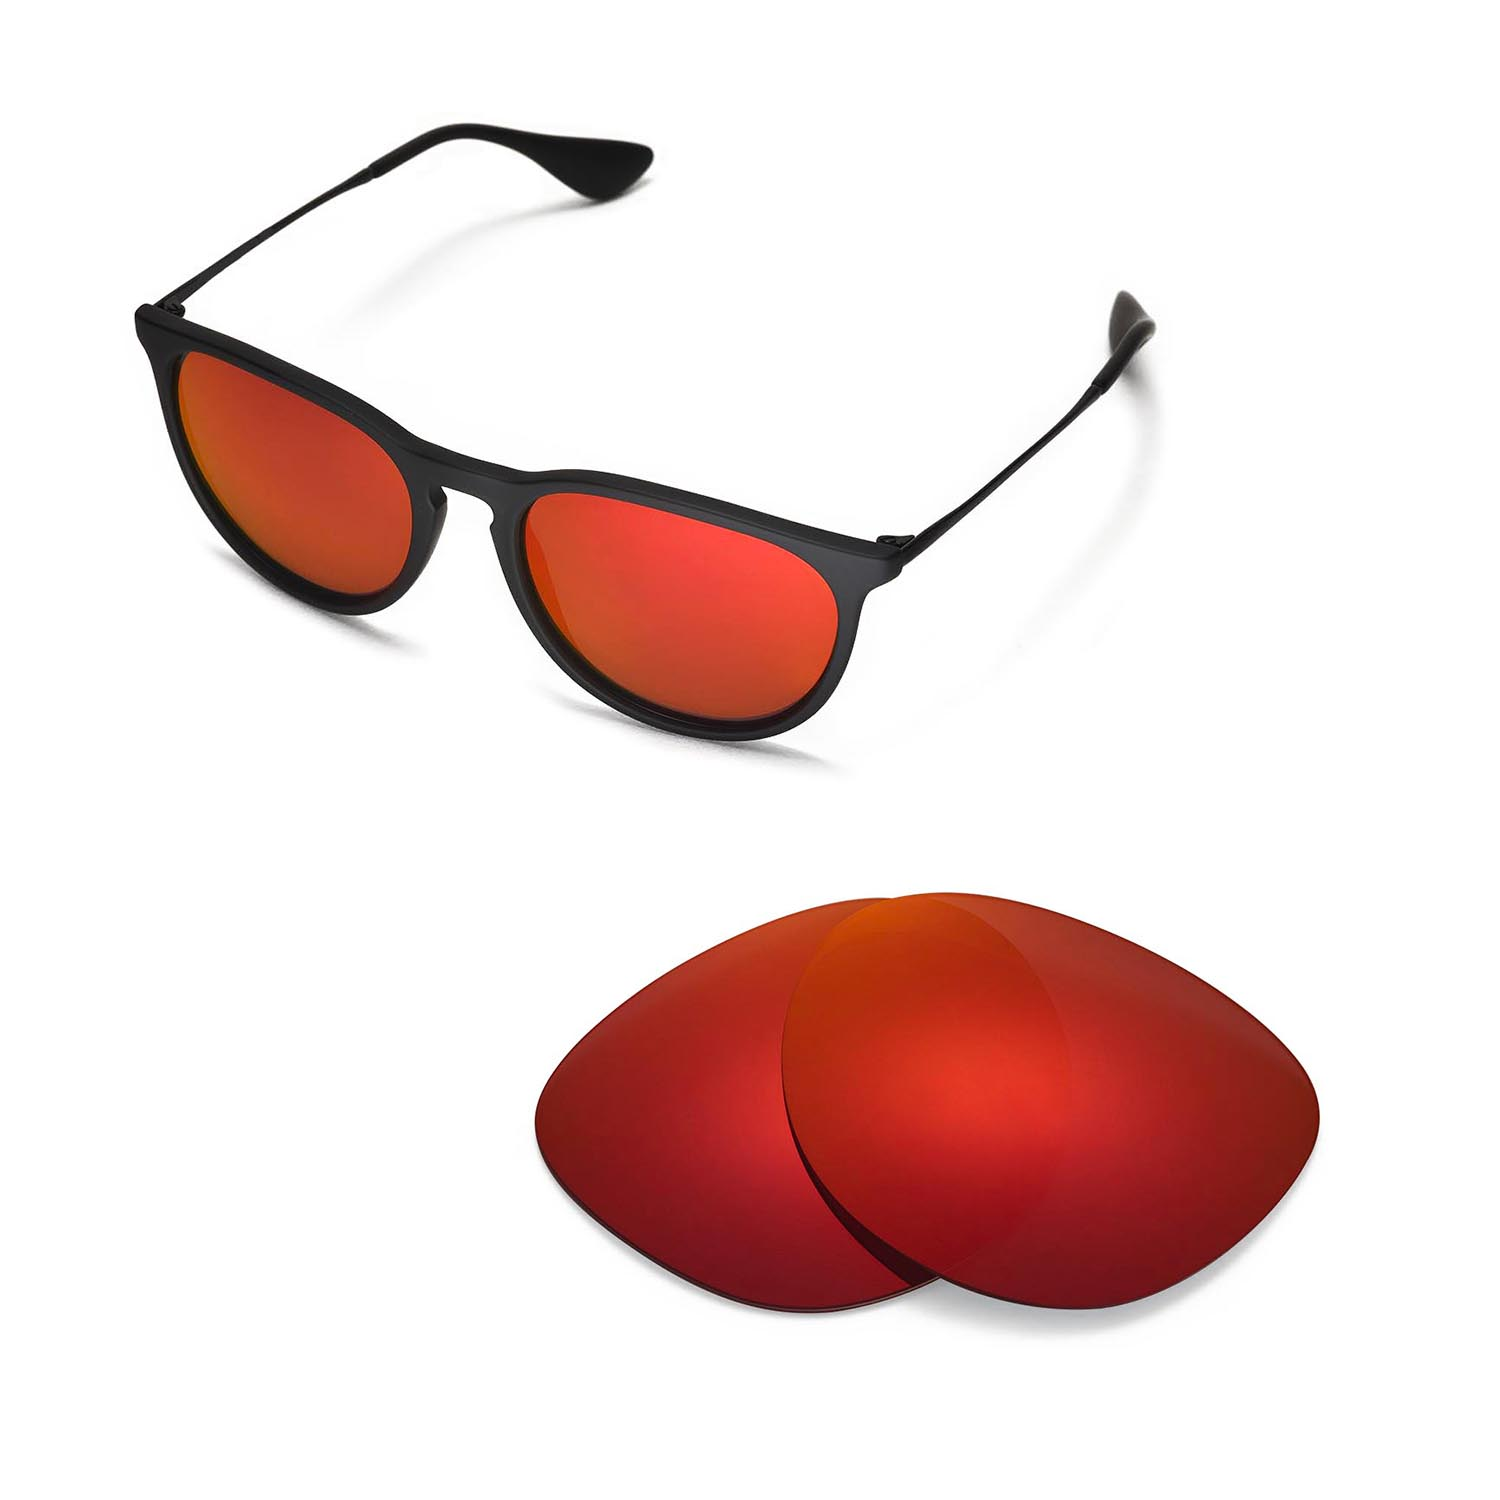 Walleva Polarized Fire Red Lenses for Ray-Ban Erika RB4171 54mm x1; Walleva Microfiber Lens Cleaning Cloth x1